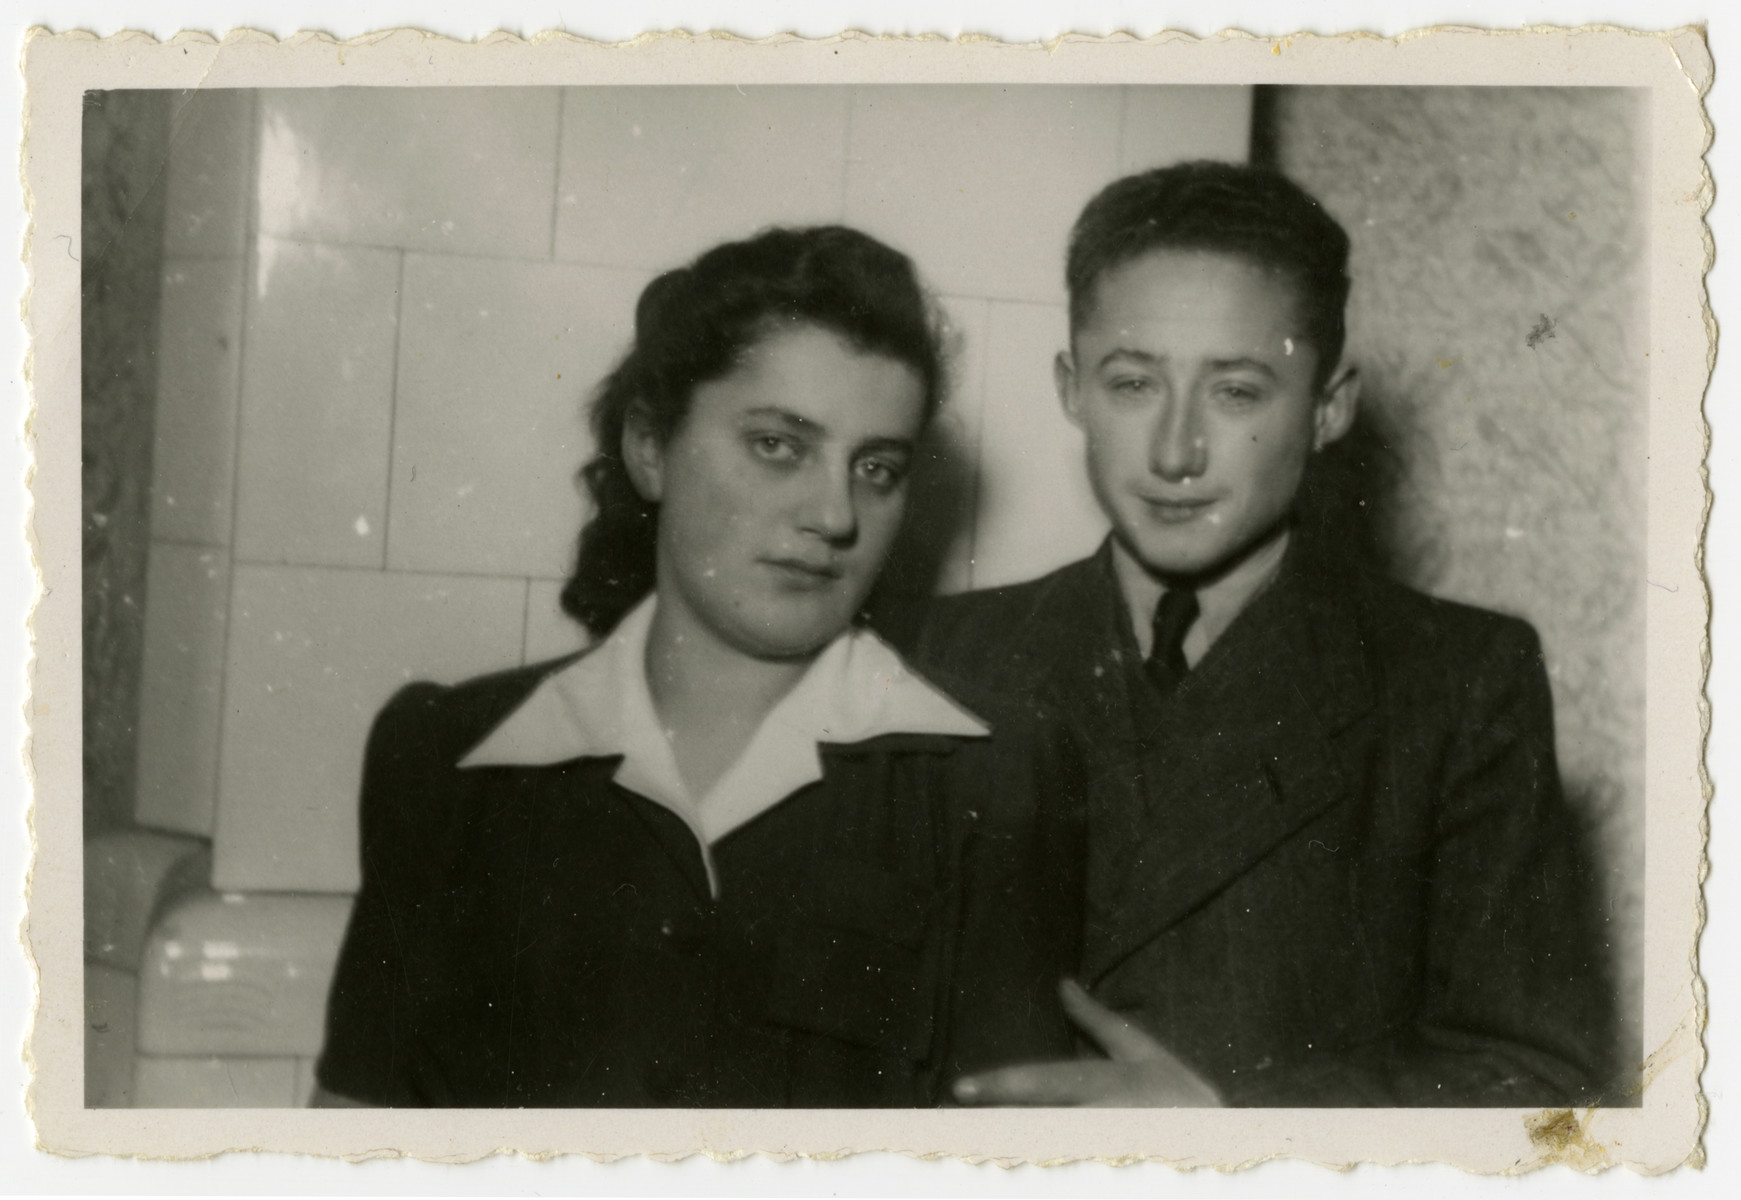 Ida Dawidowicz and Misha Zilist pose for photograph after the war.